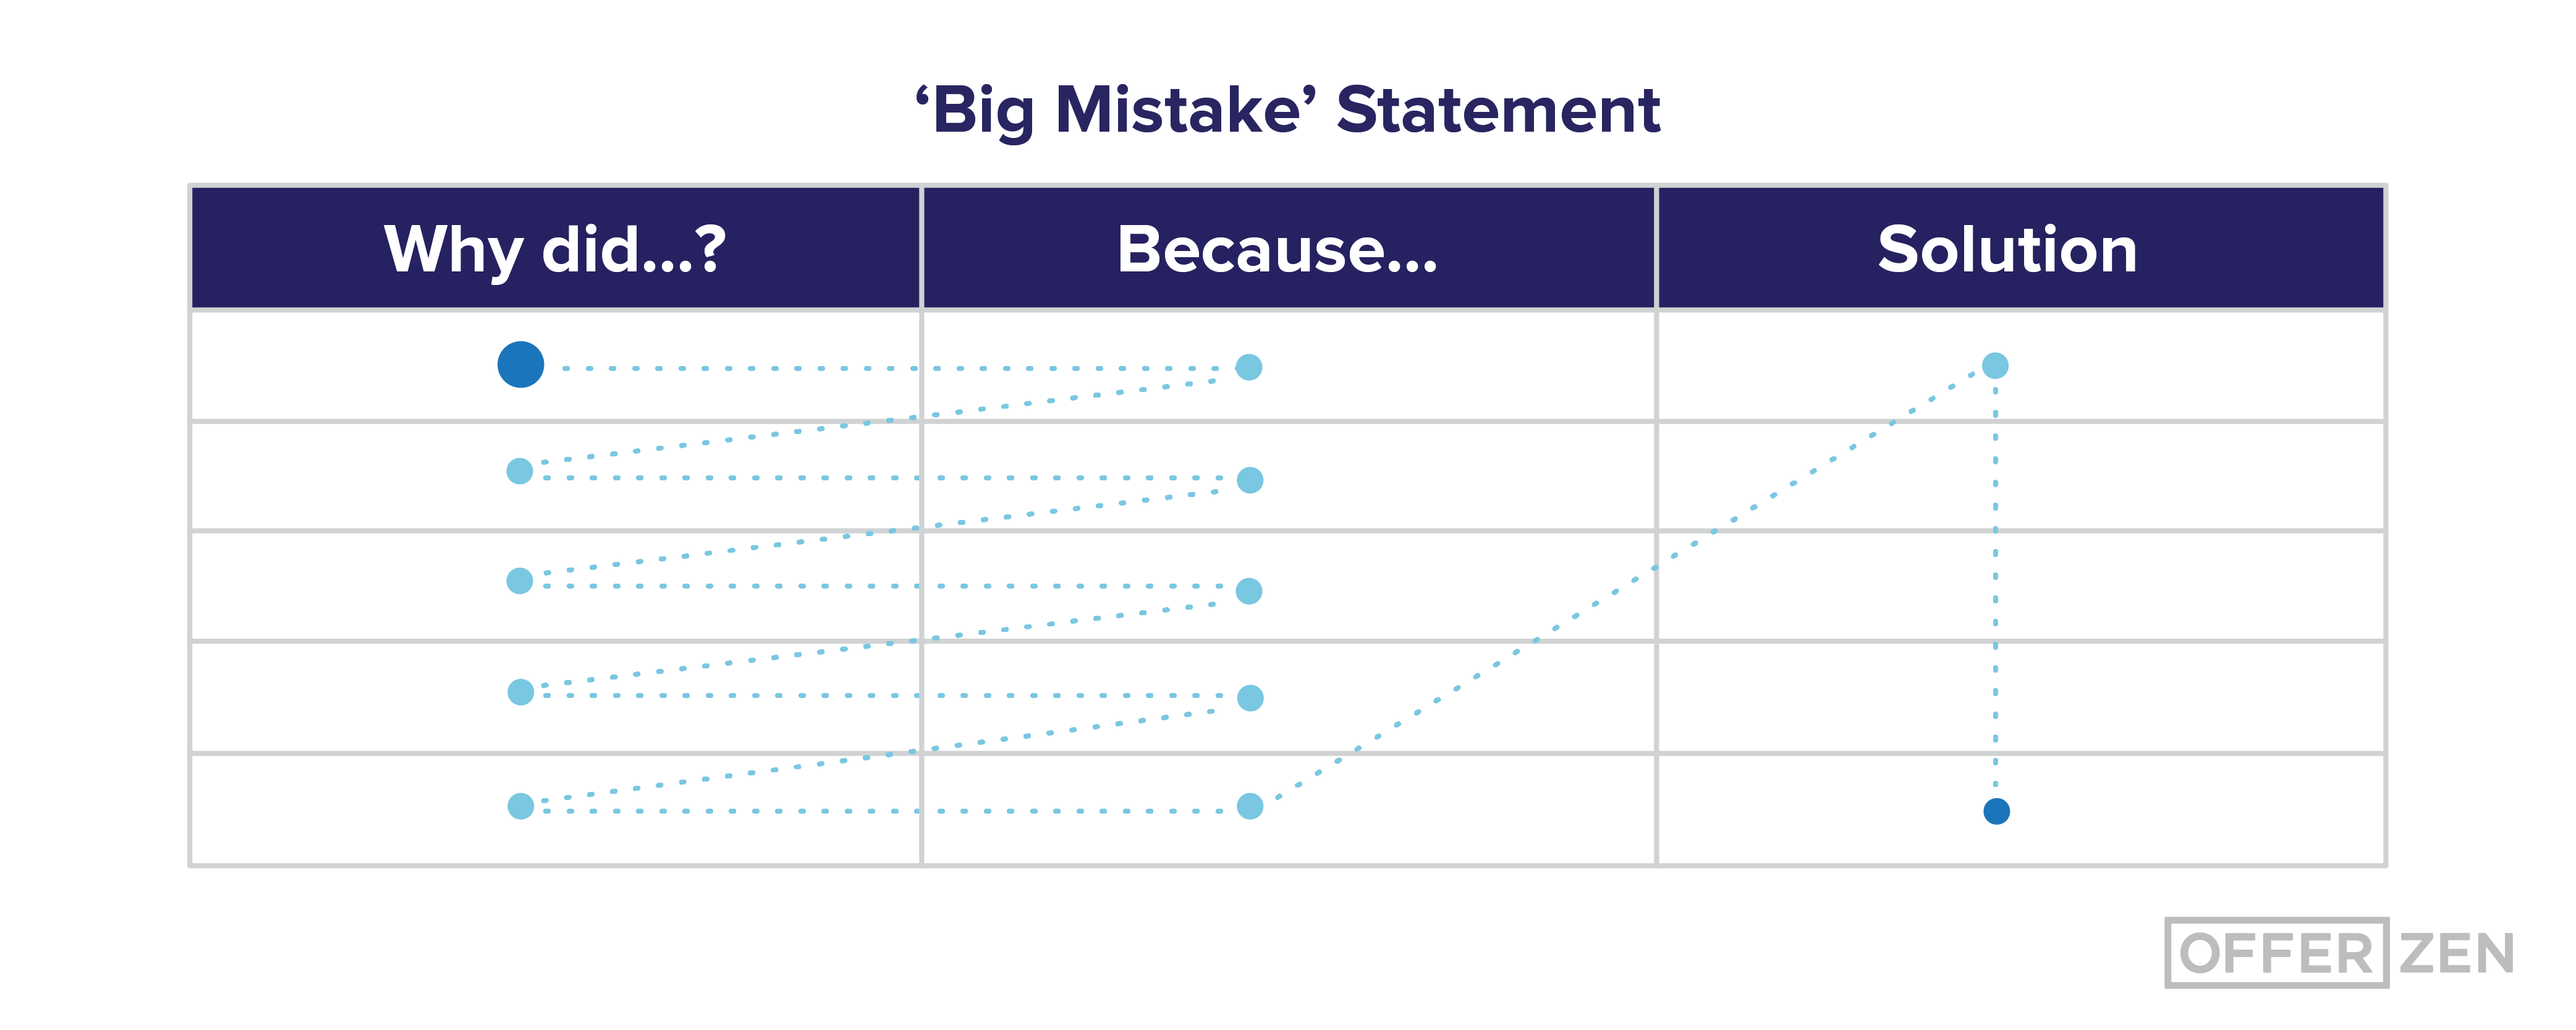 5-Whys_-Big-mistake-table-02